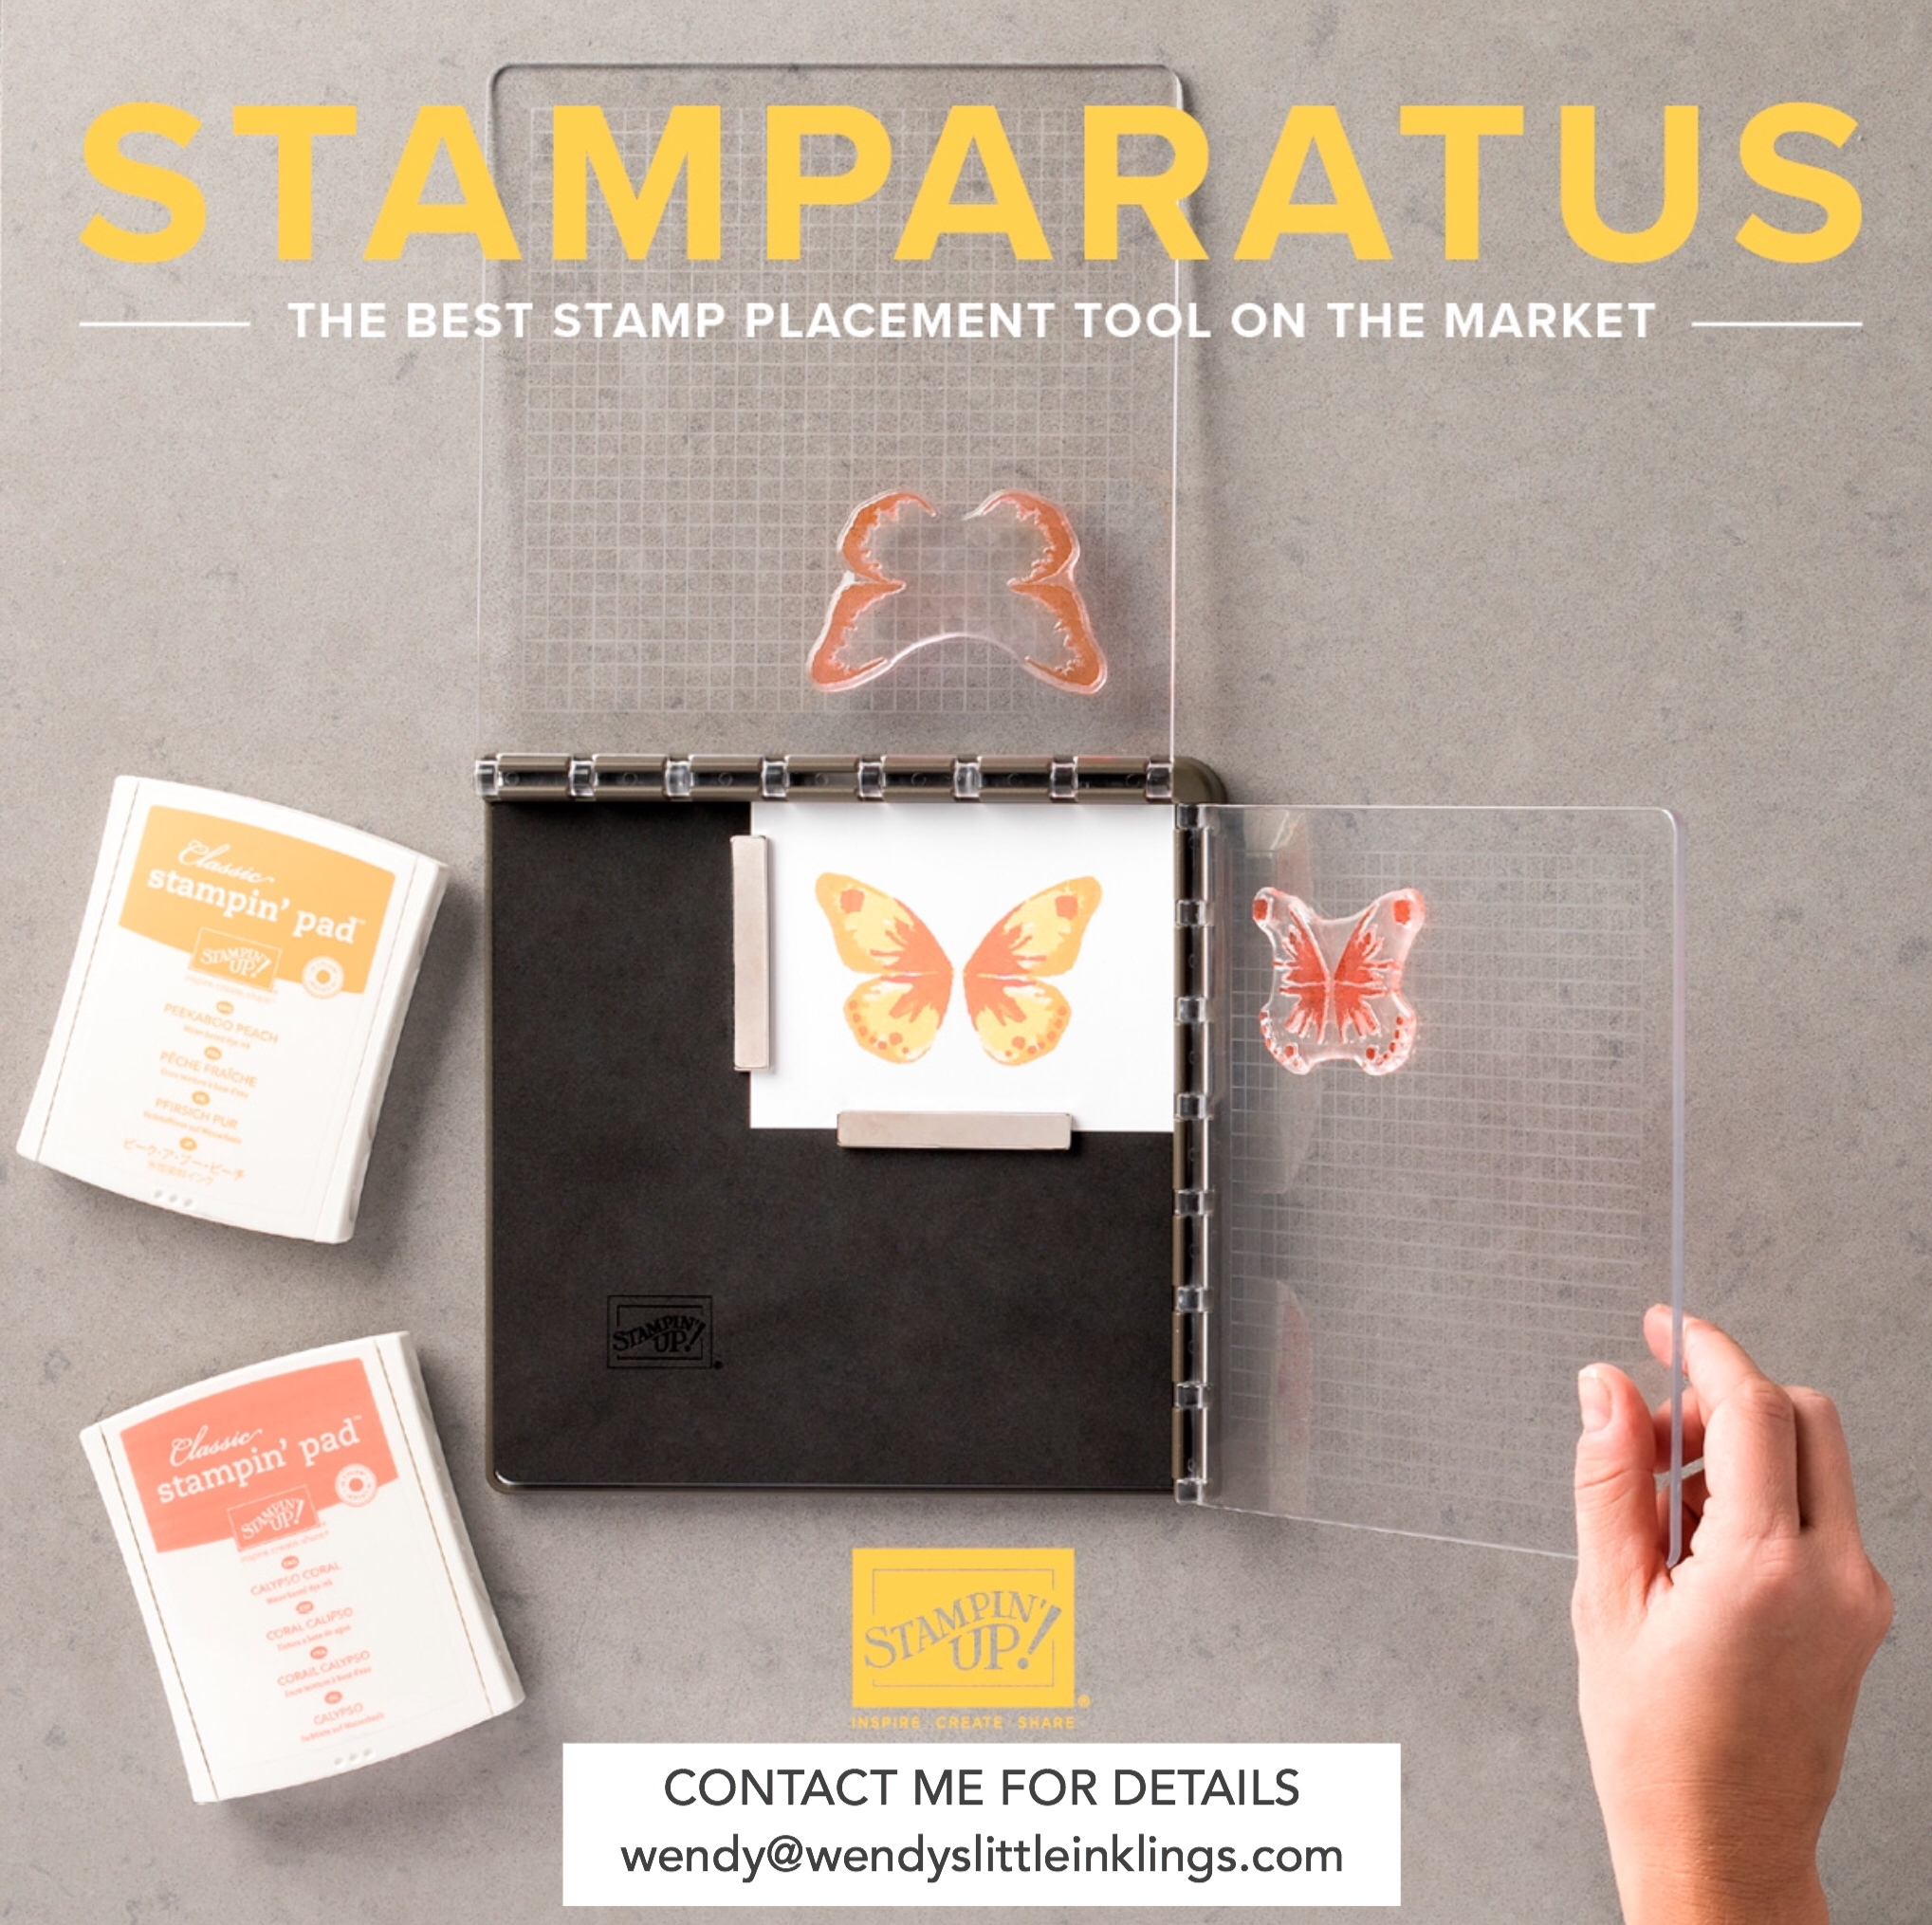 stamparatus-is-coming-reserve-yours